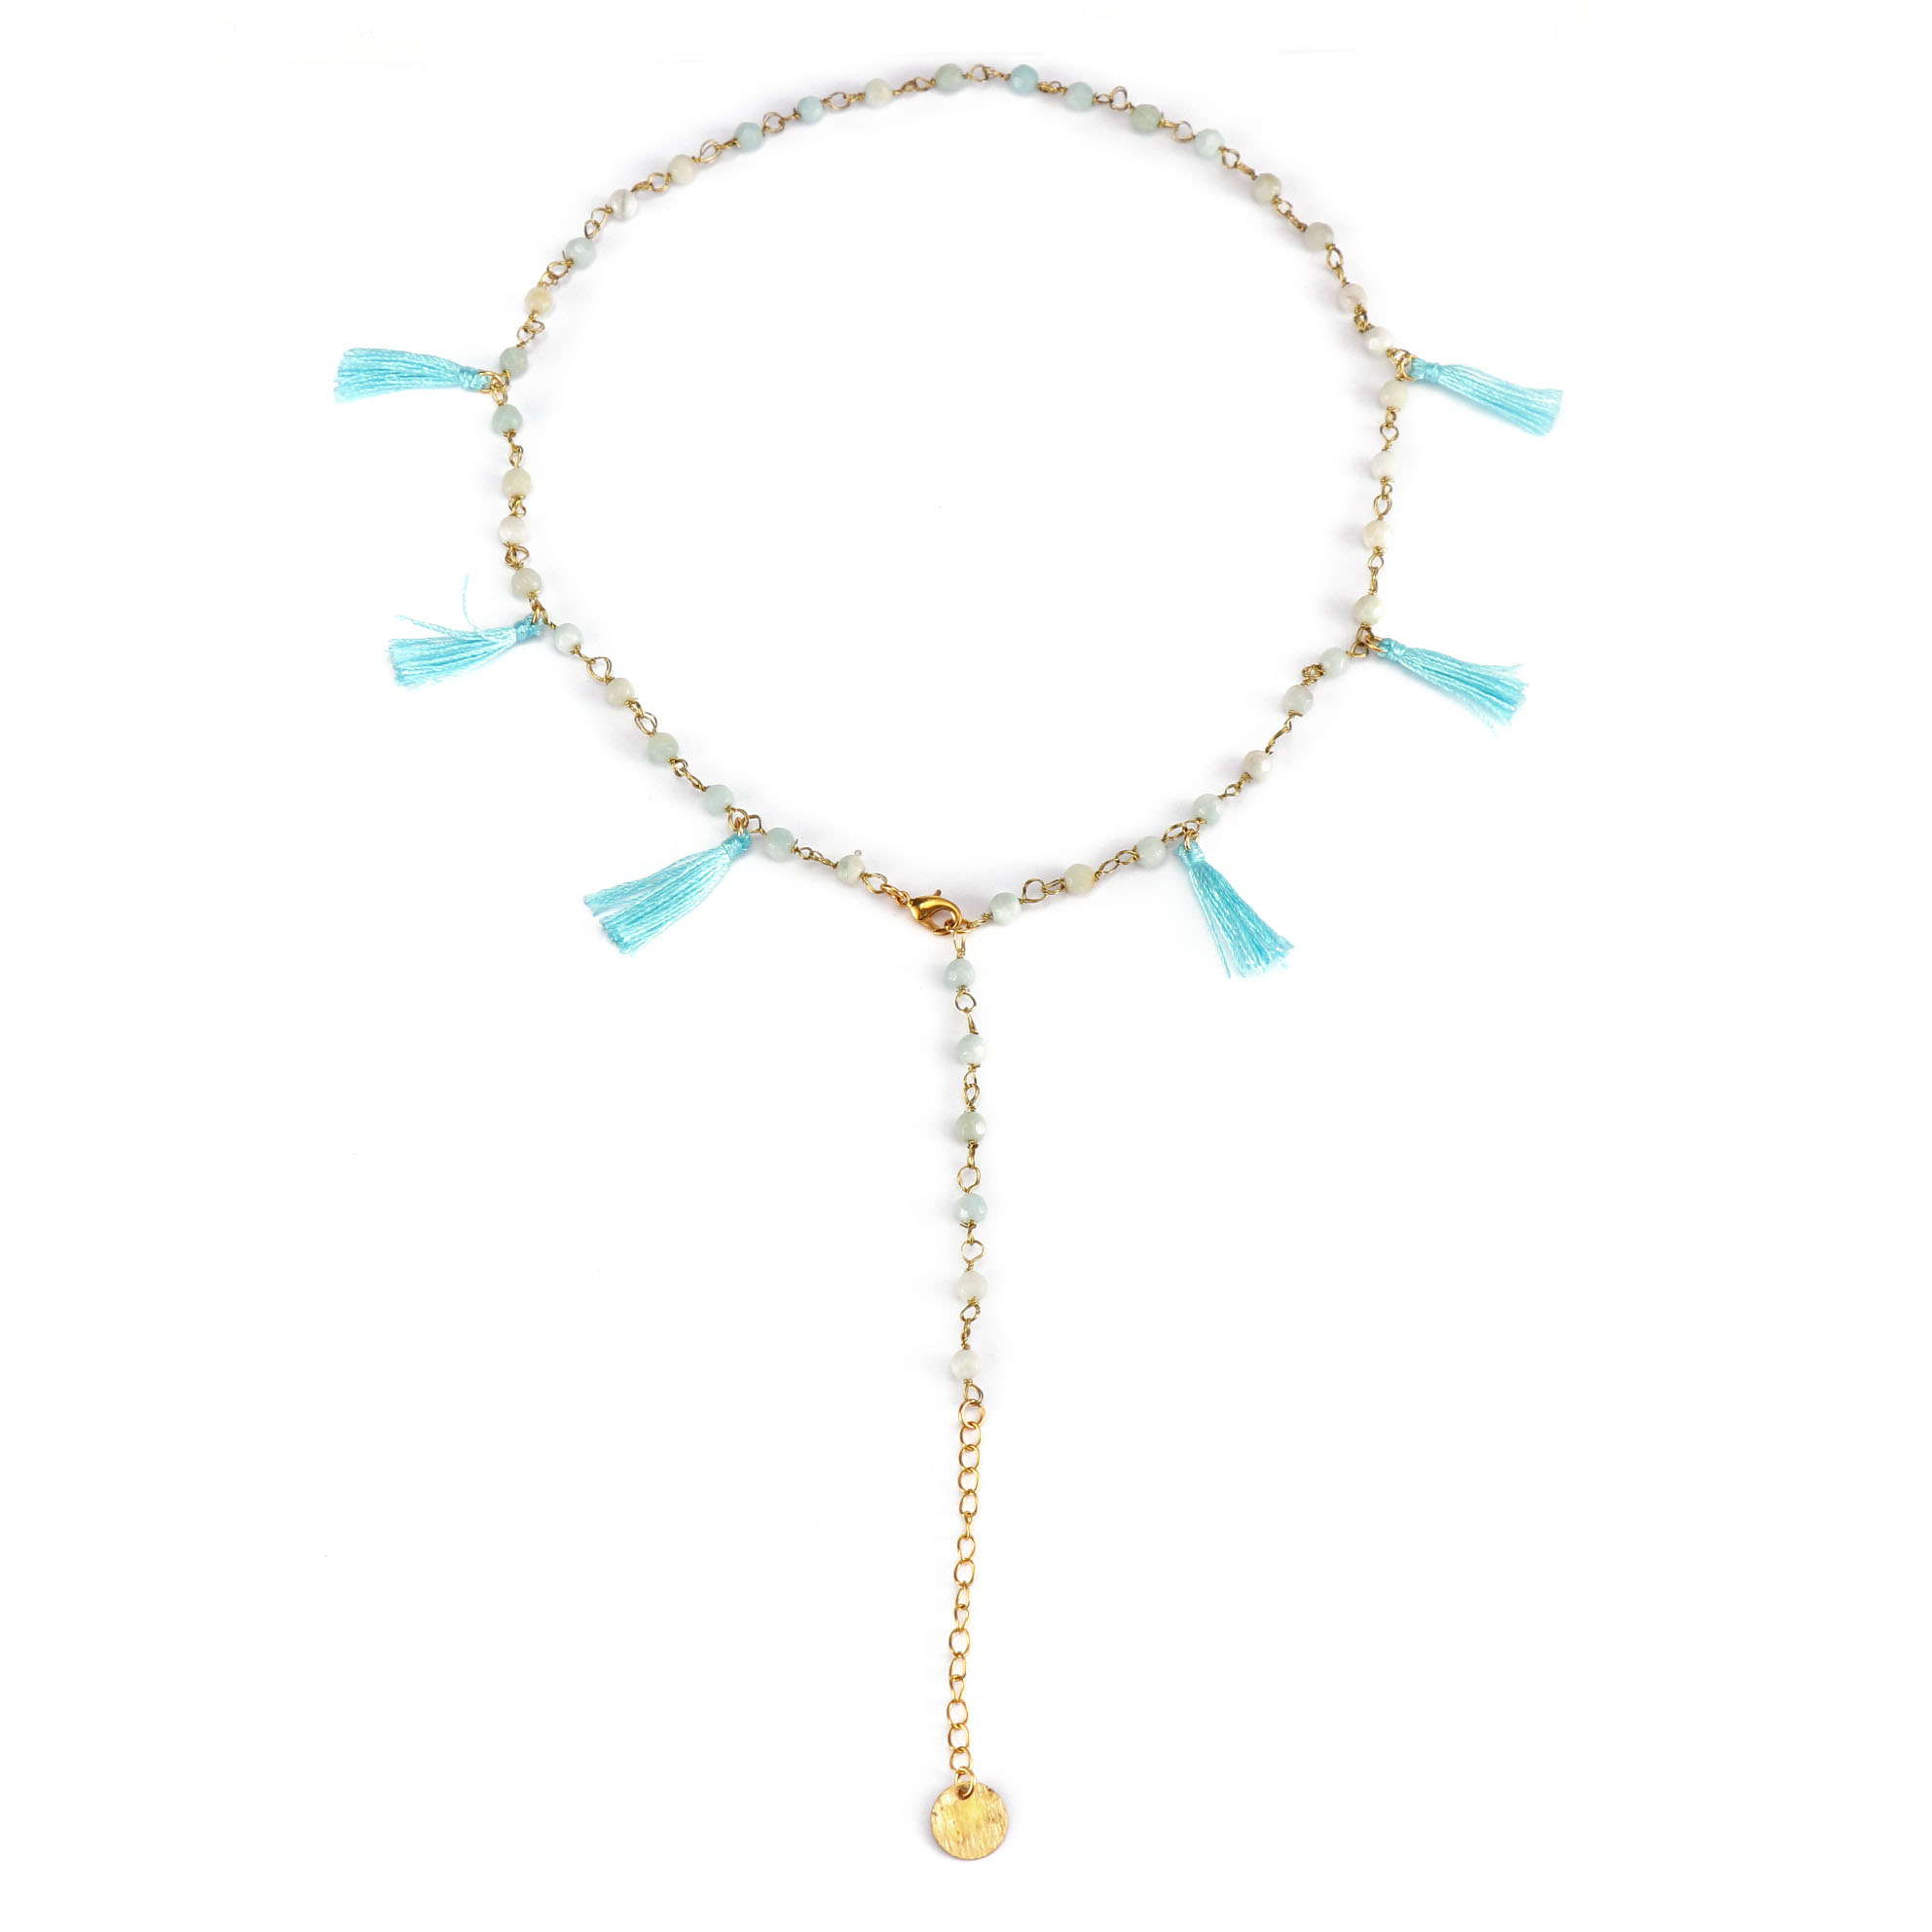 Stylish Wholesale Gold Plated Crystal Beads Necklace With Sky blue Color Tassel Women Jewlery